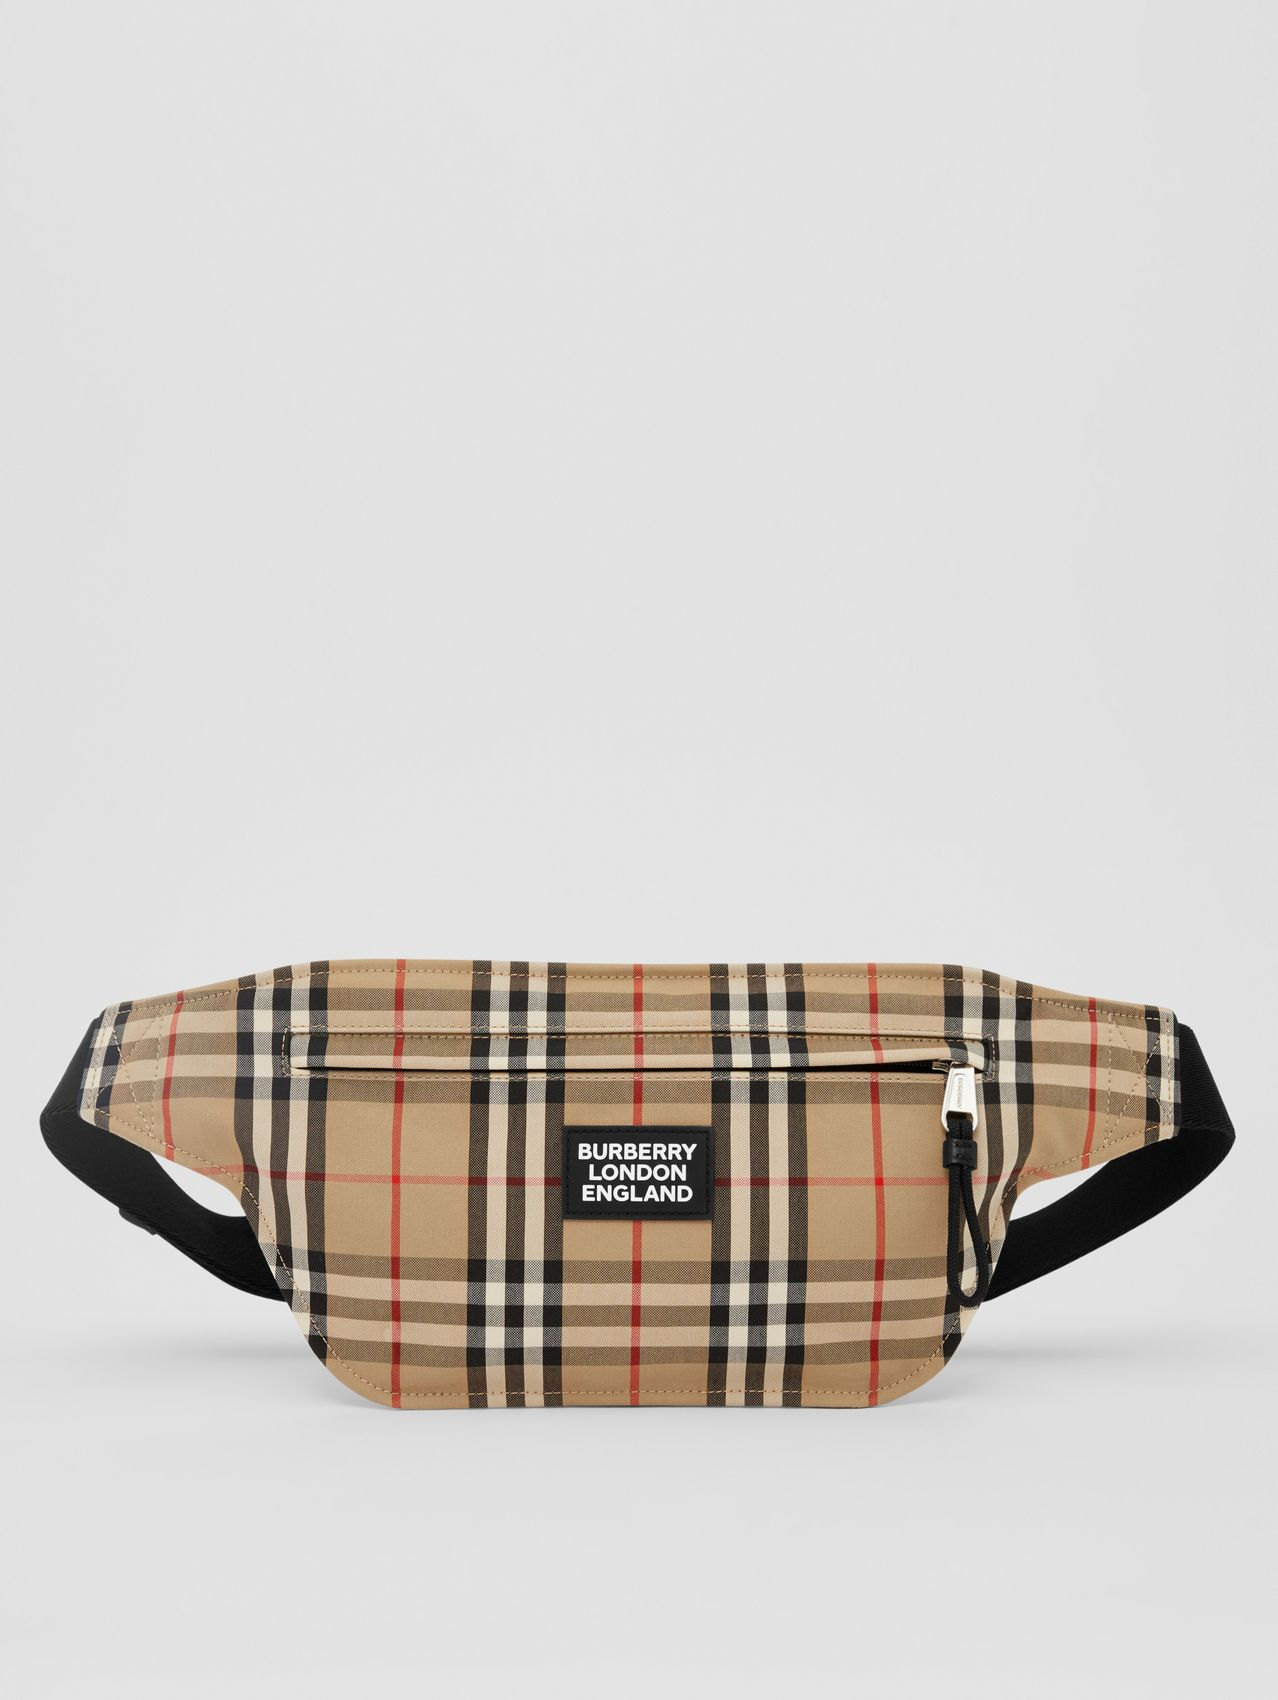 Logo Appliqué Vintage Check Brummell Bum Bag in Archive Beige